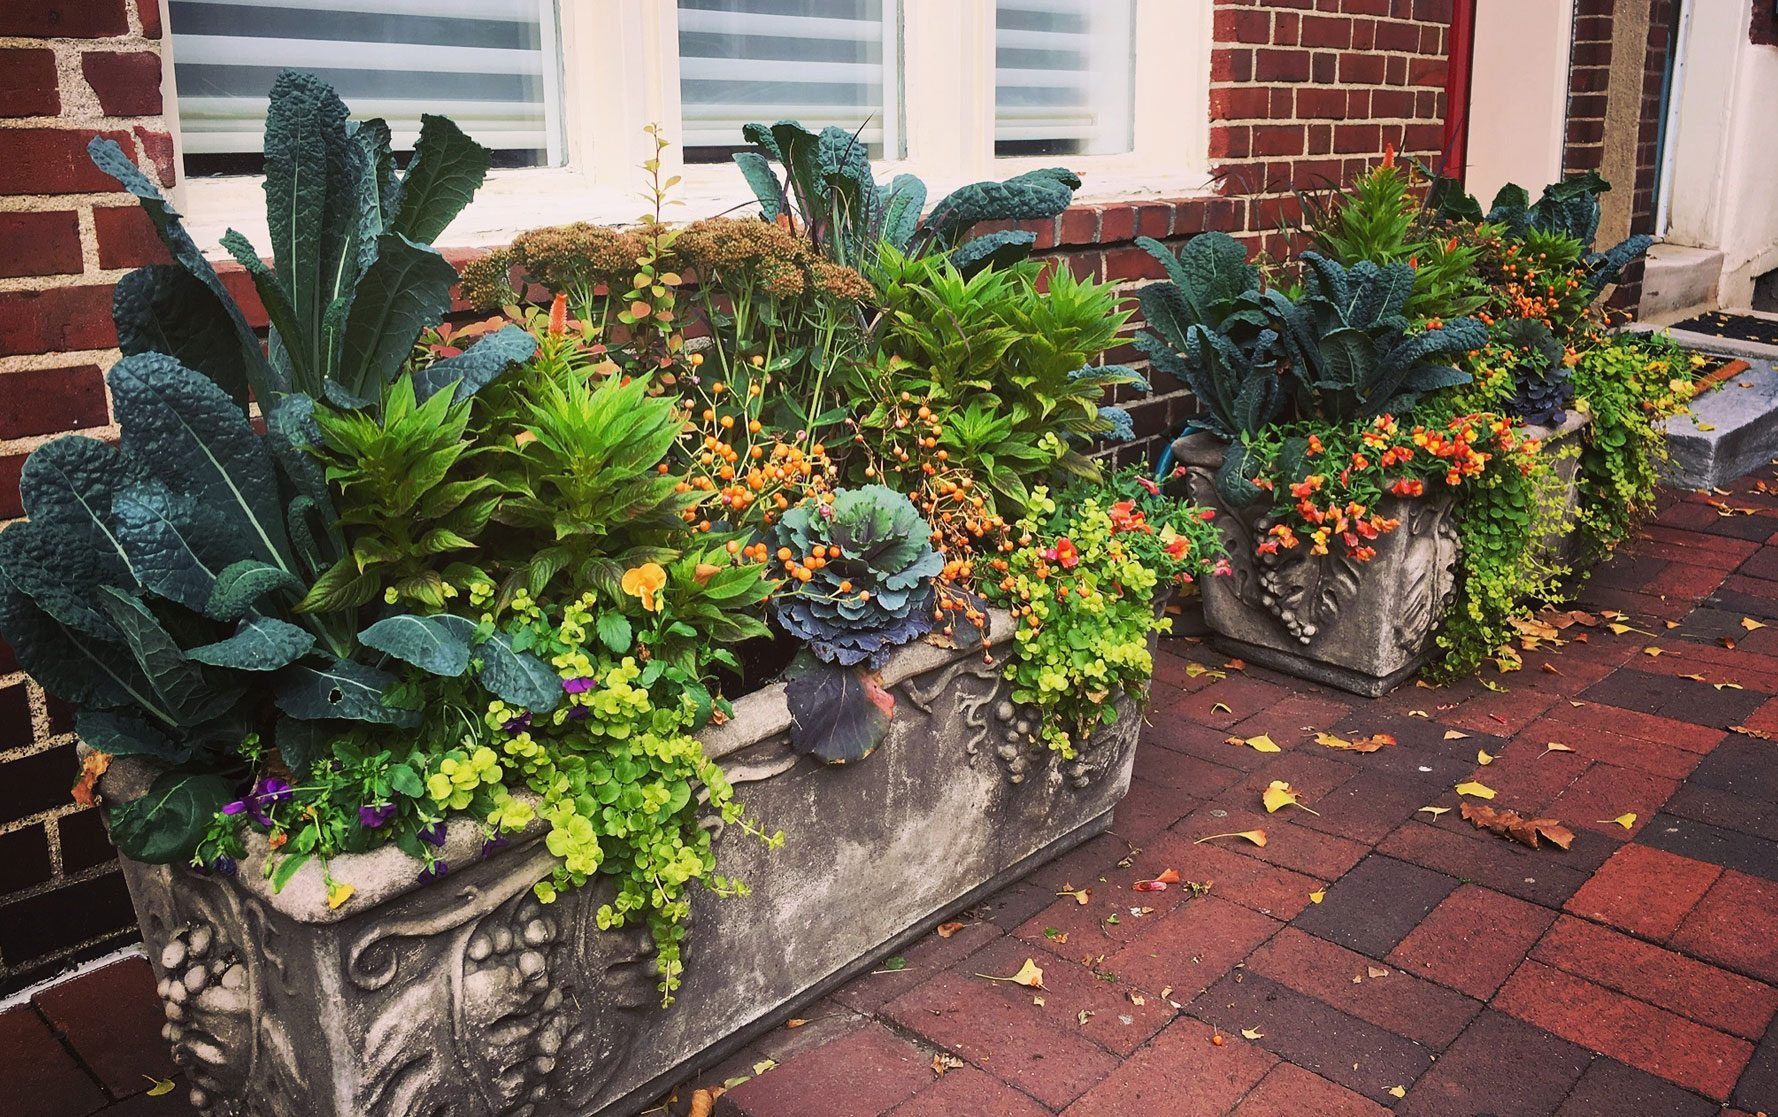 Two Fall Planter Arrangements in Cement Front Door Planters